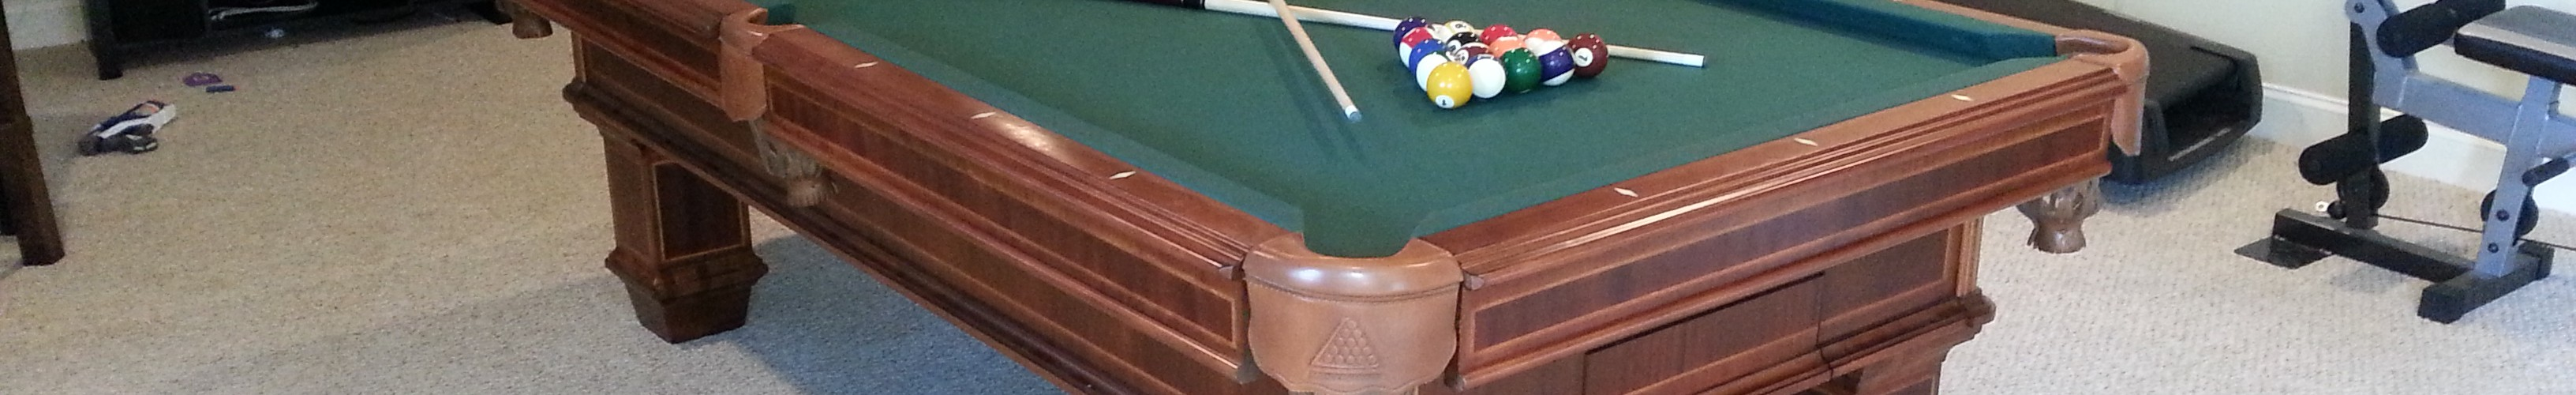 Perfect Pool Table Moving.